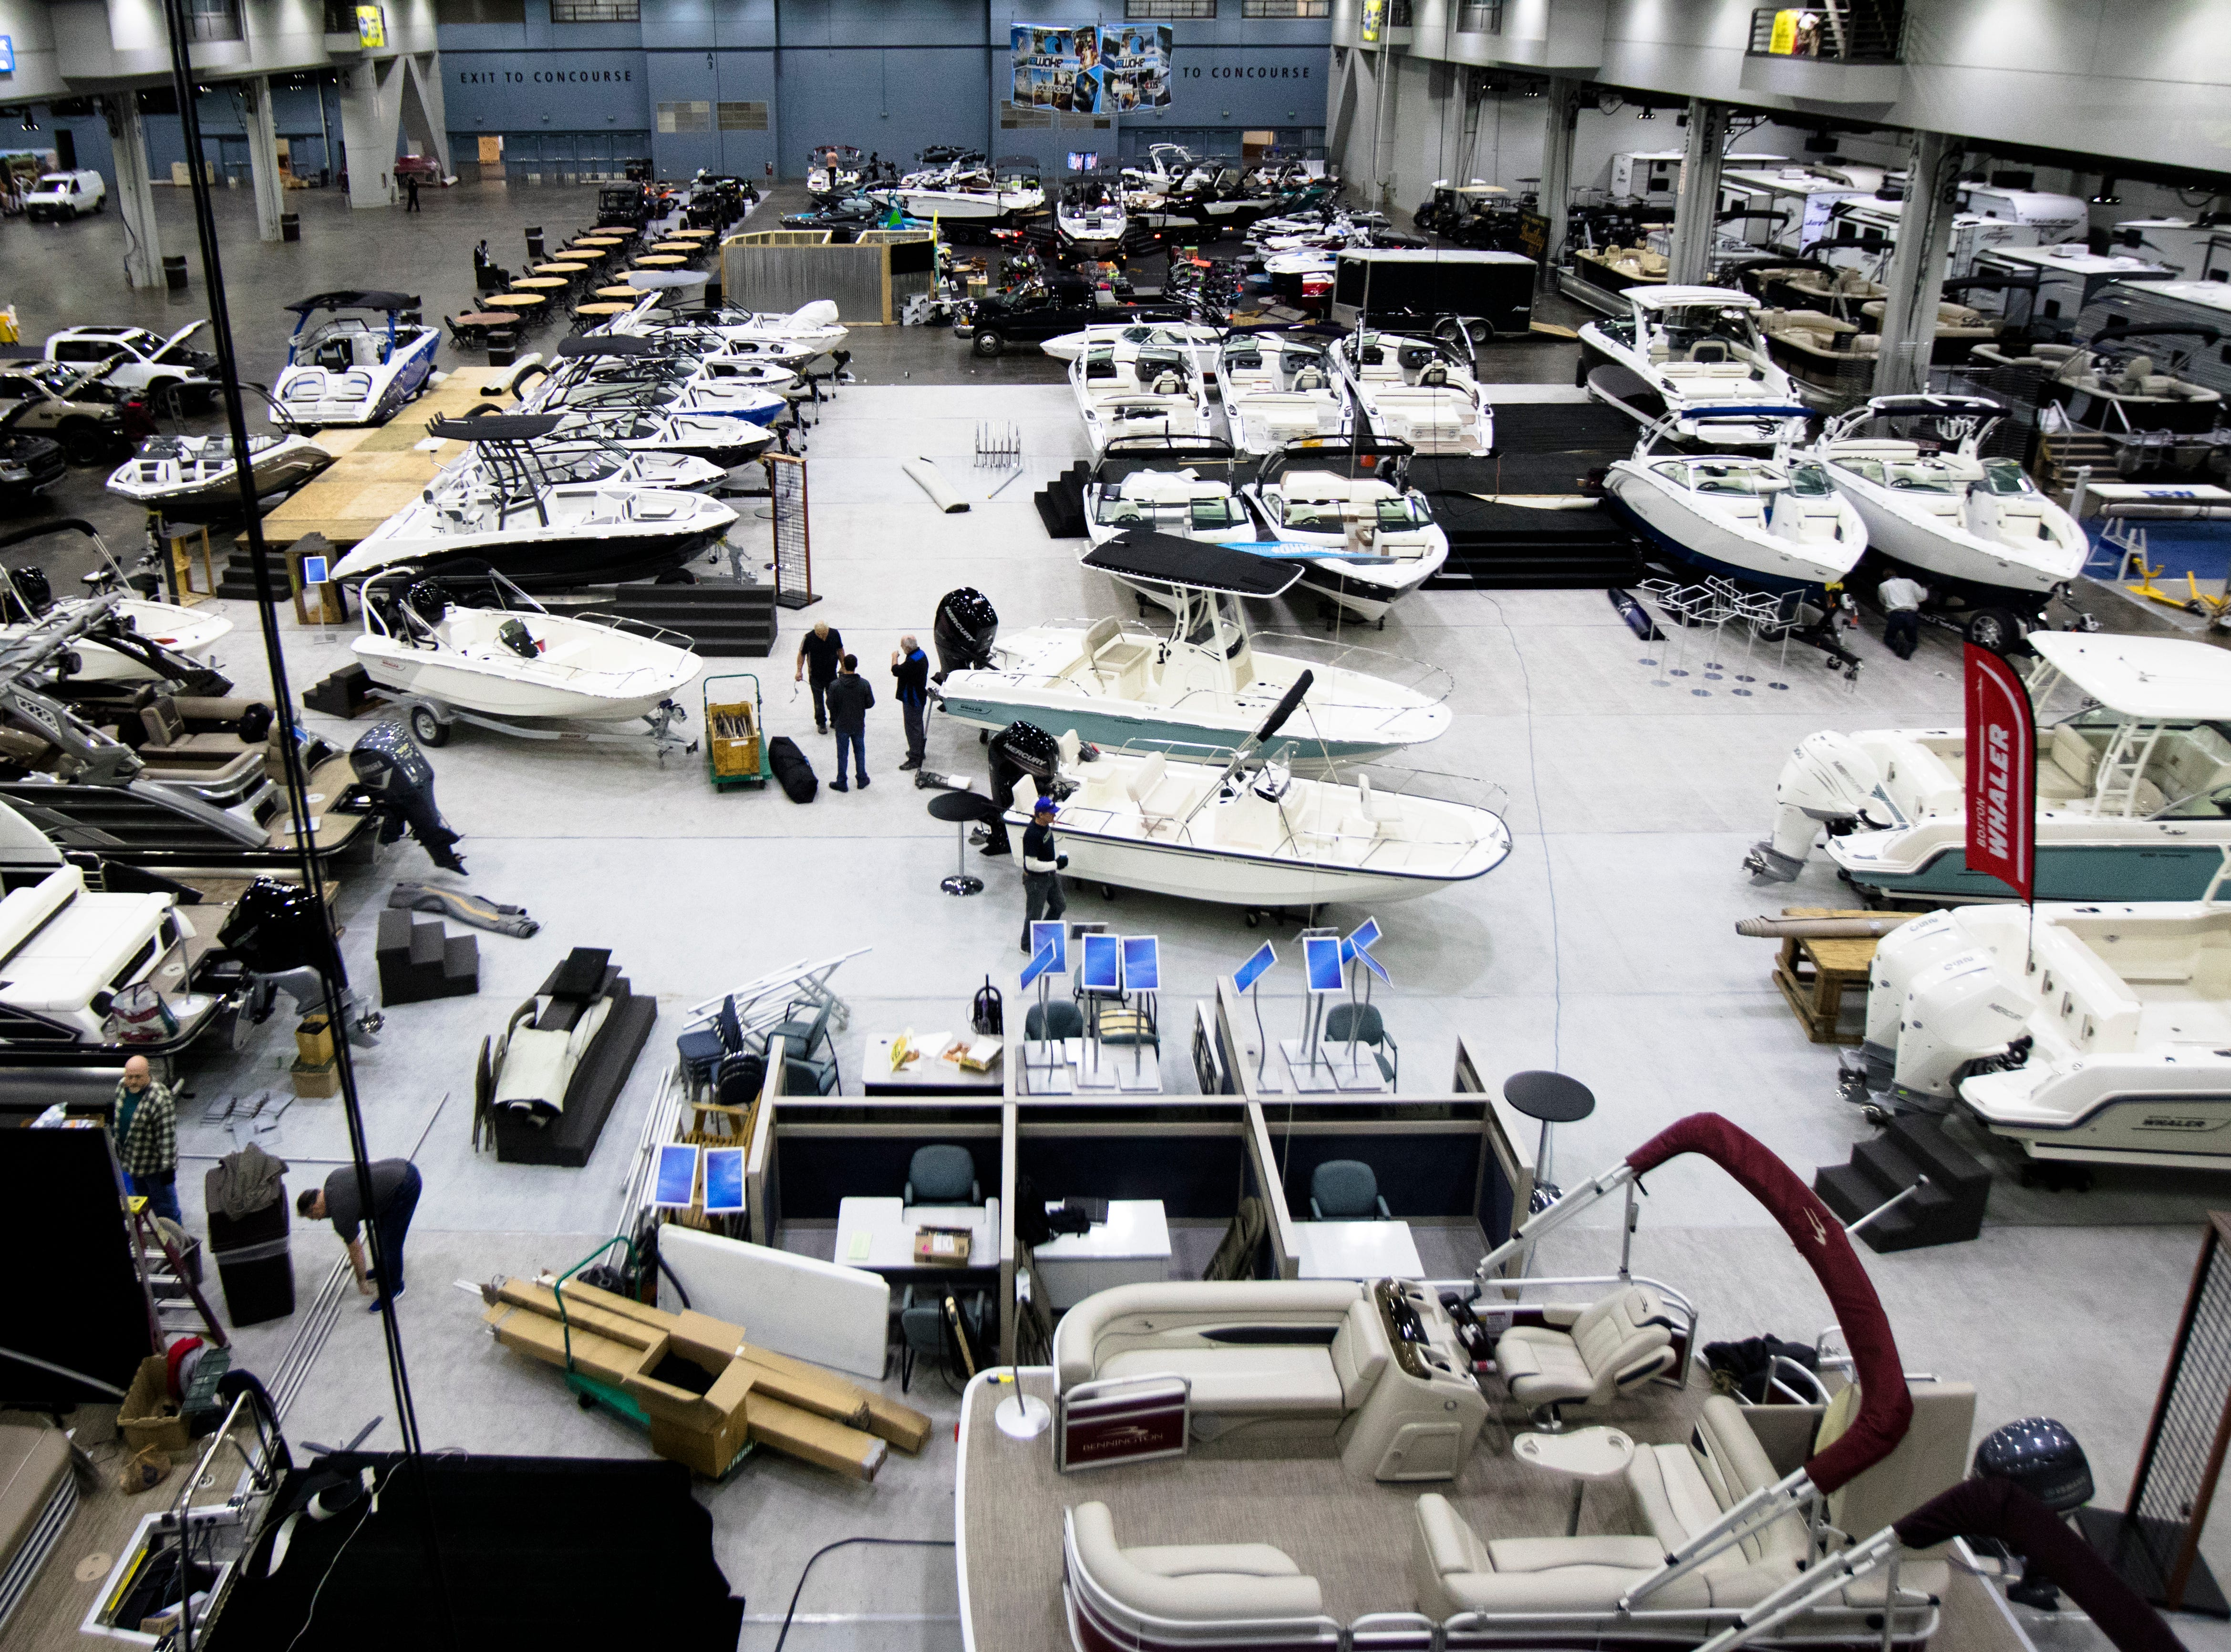 Workers prepare for the annual Cincinnati Travel Sports and Boat Show on Wednesday, Jan. 16, 2018 at the Duke Energy Convention Center in Downtown Cincinnati.